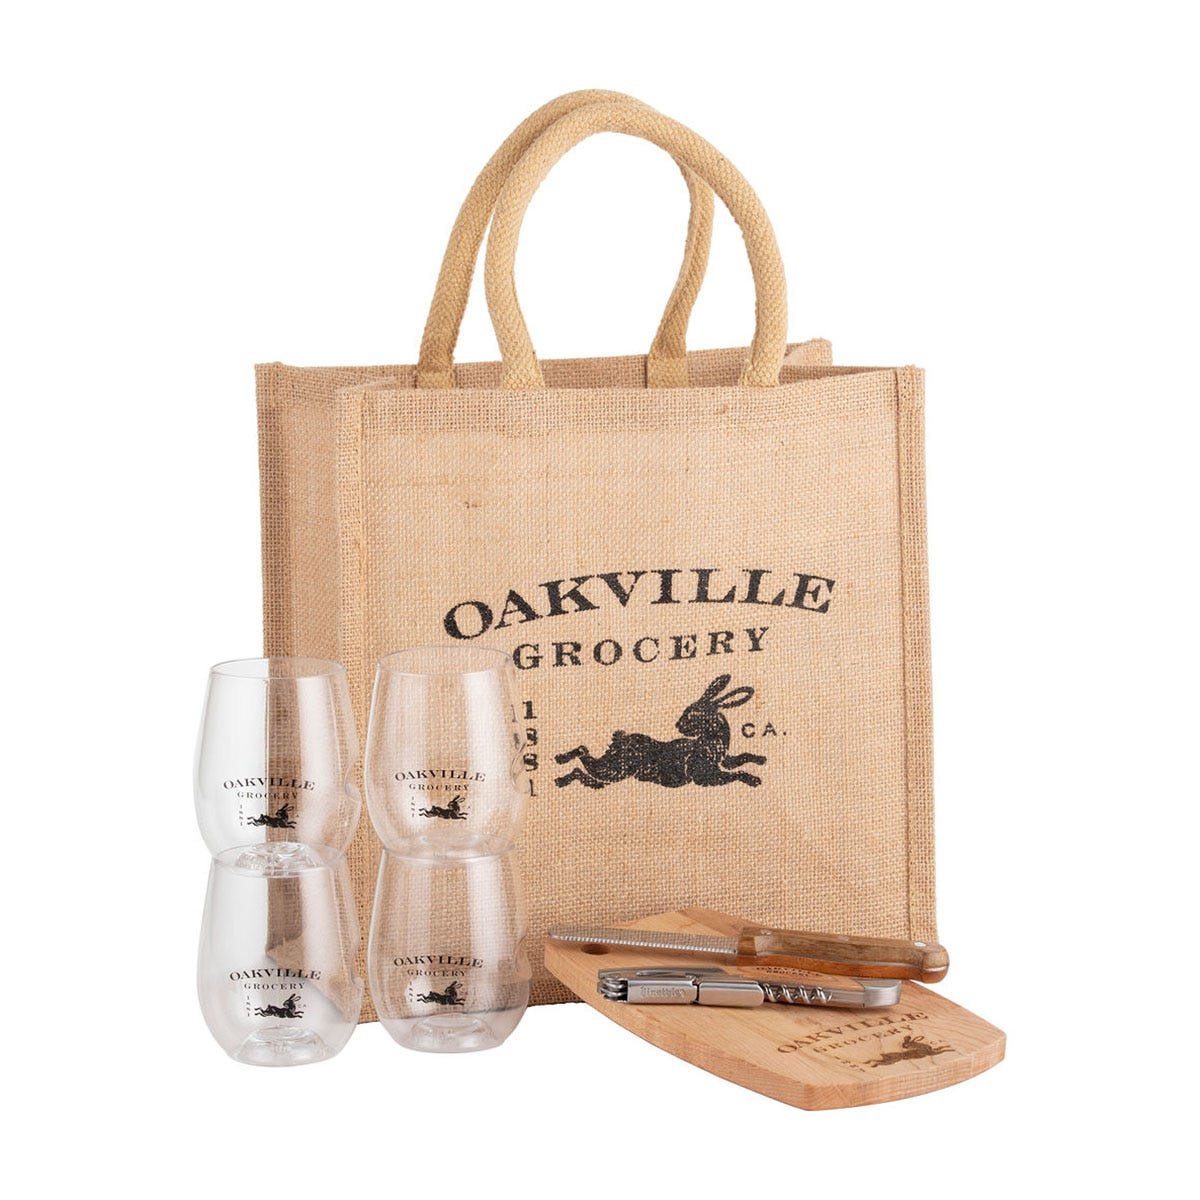 Oakville Grocery, Gift Sets Category Image